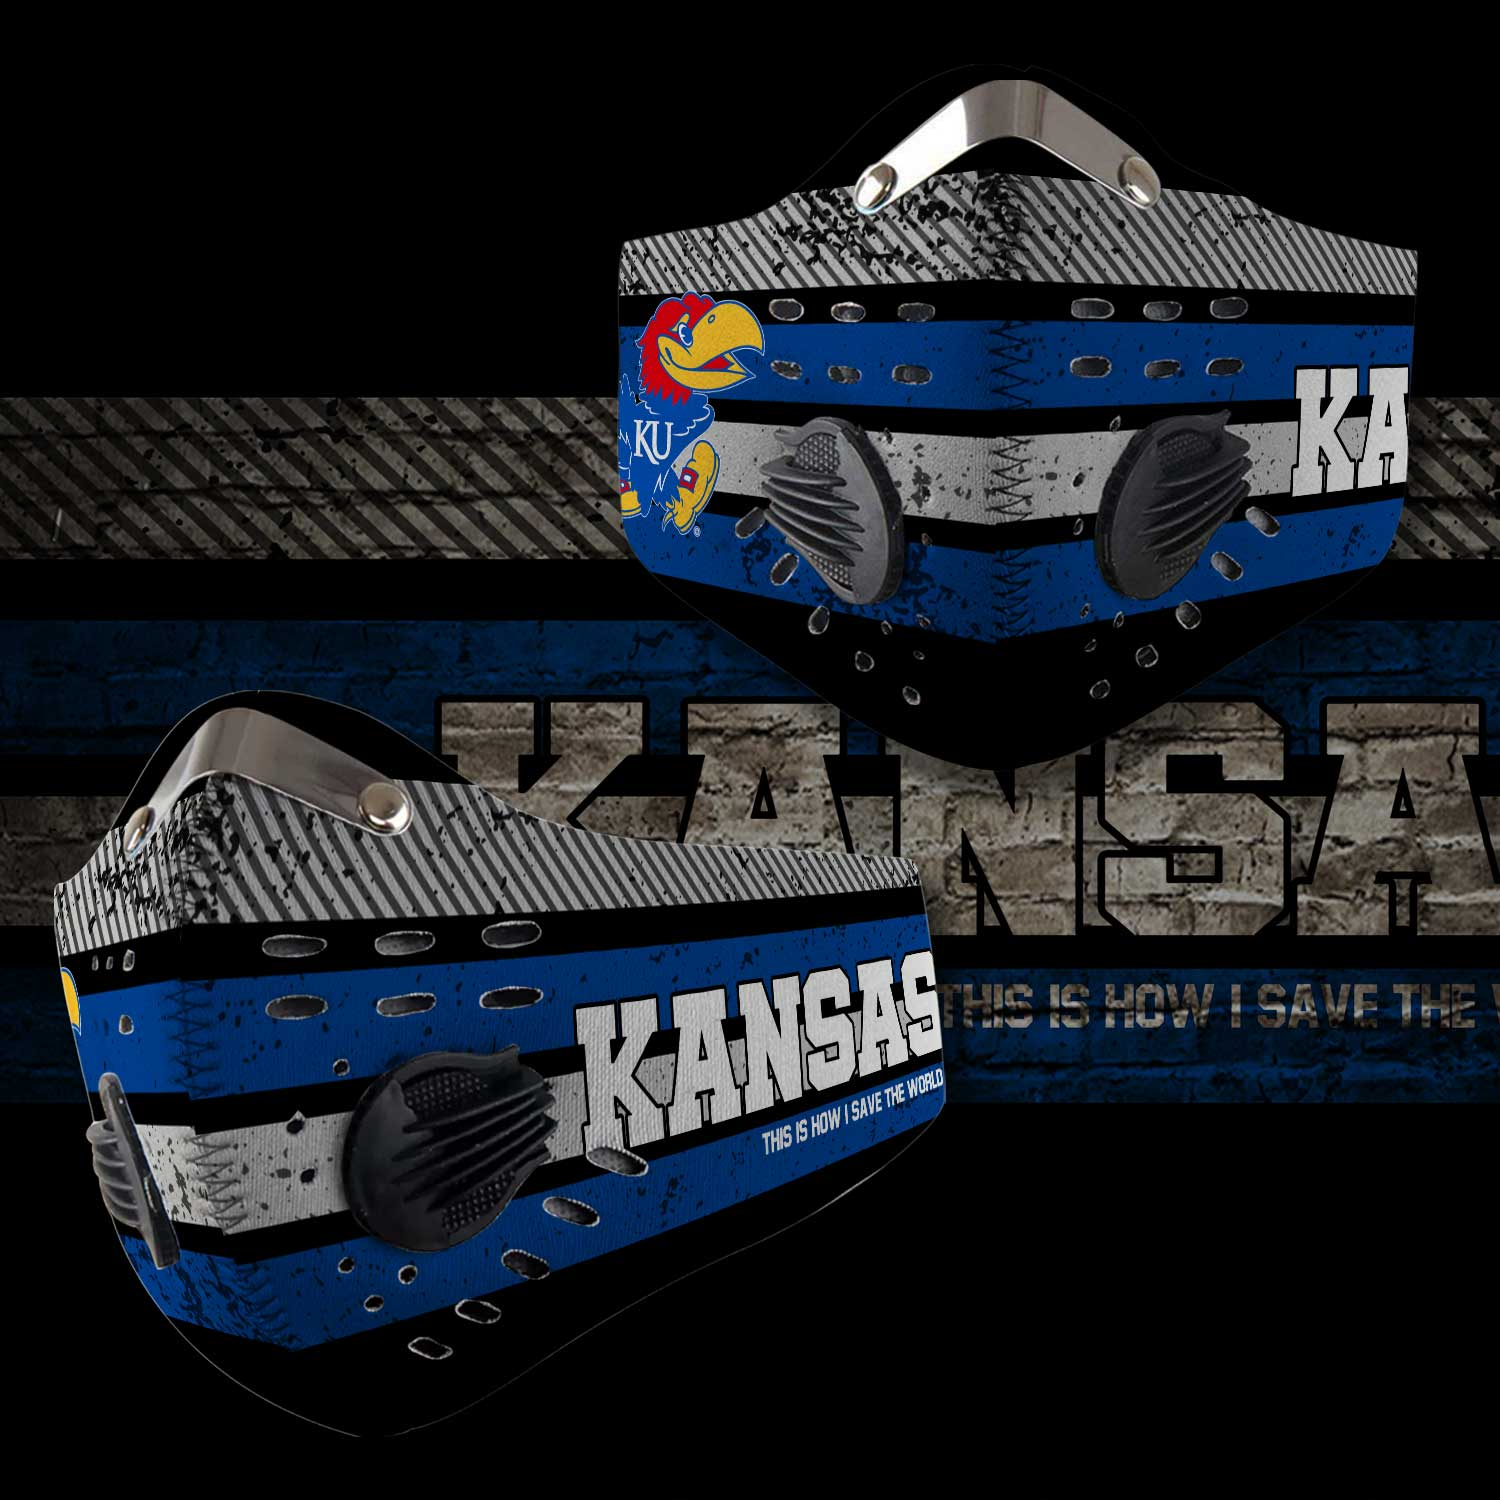 Kansas jayhawks men's basketball this is how i save the world face mask 2